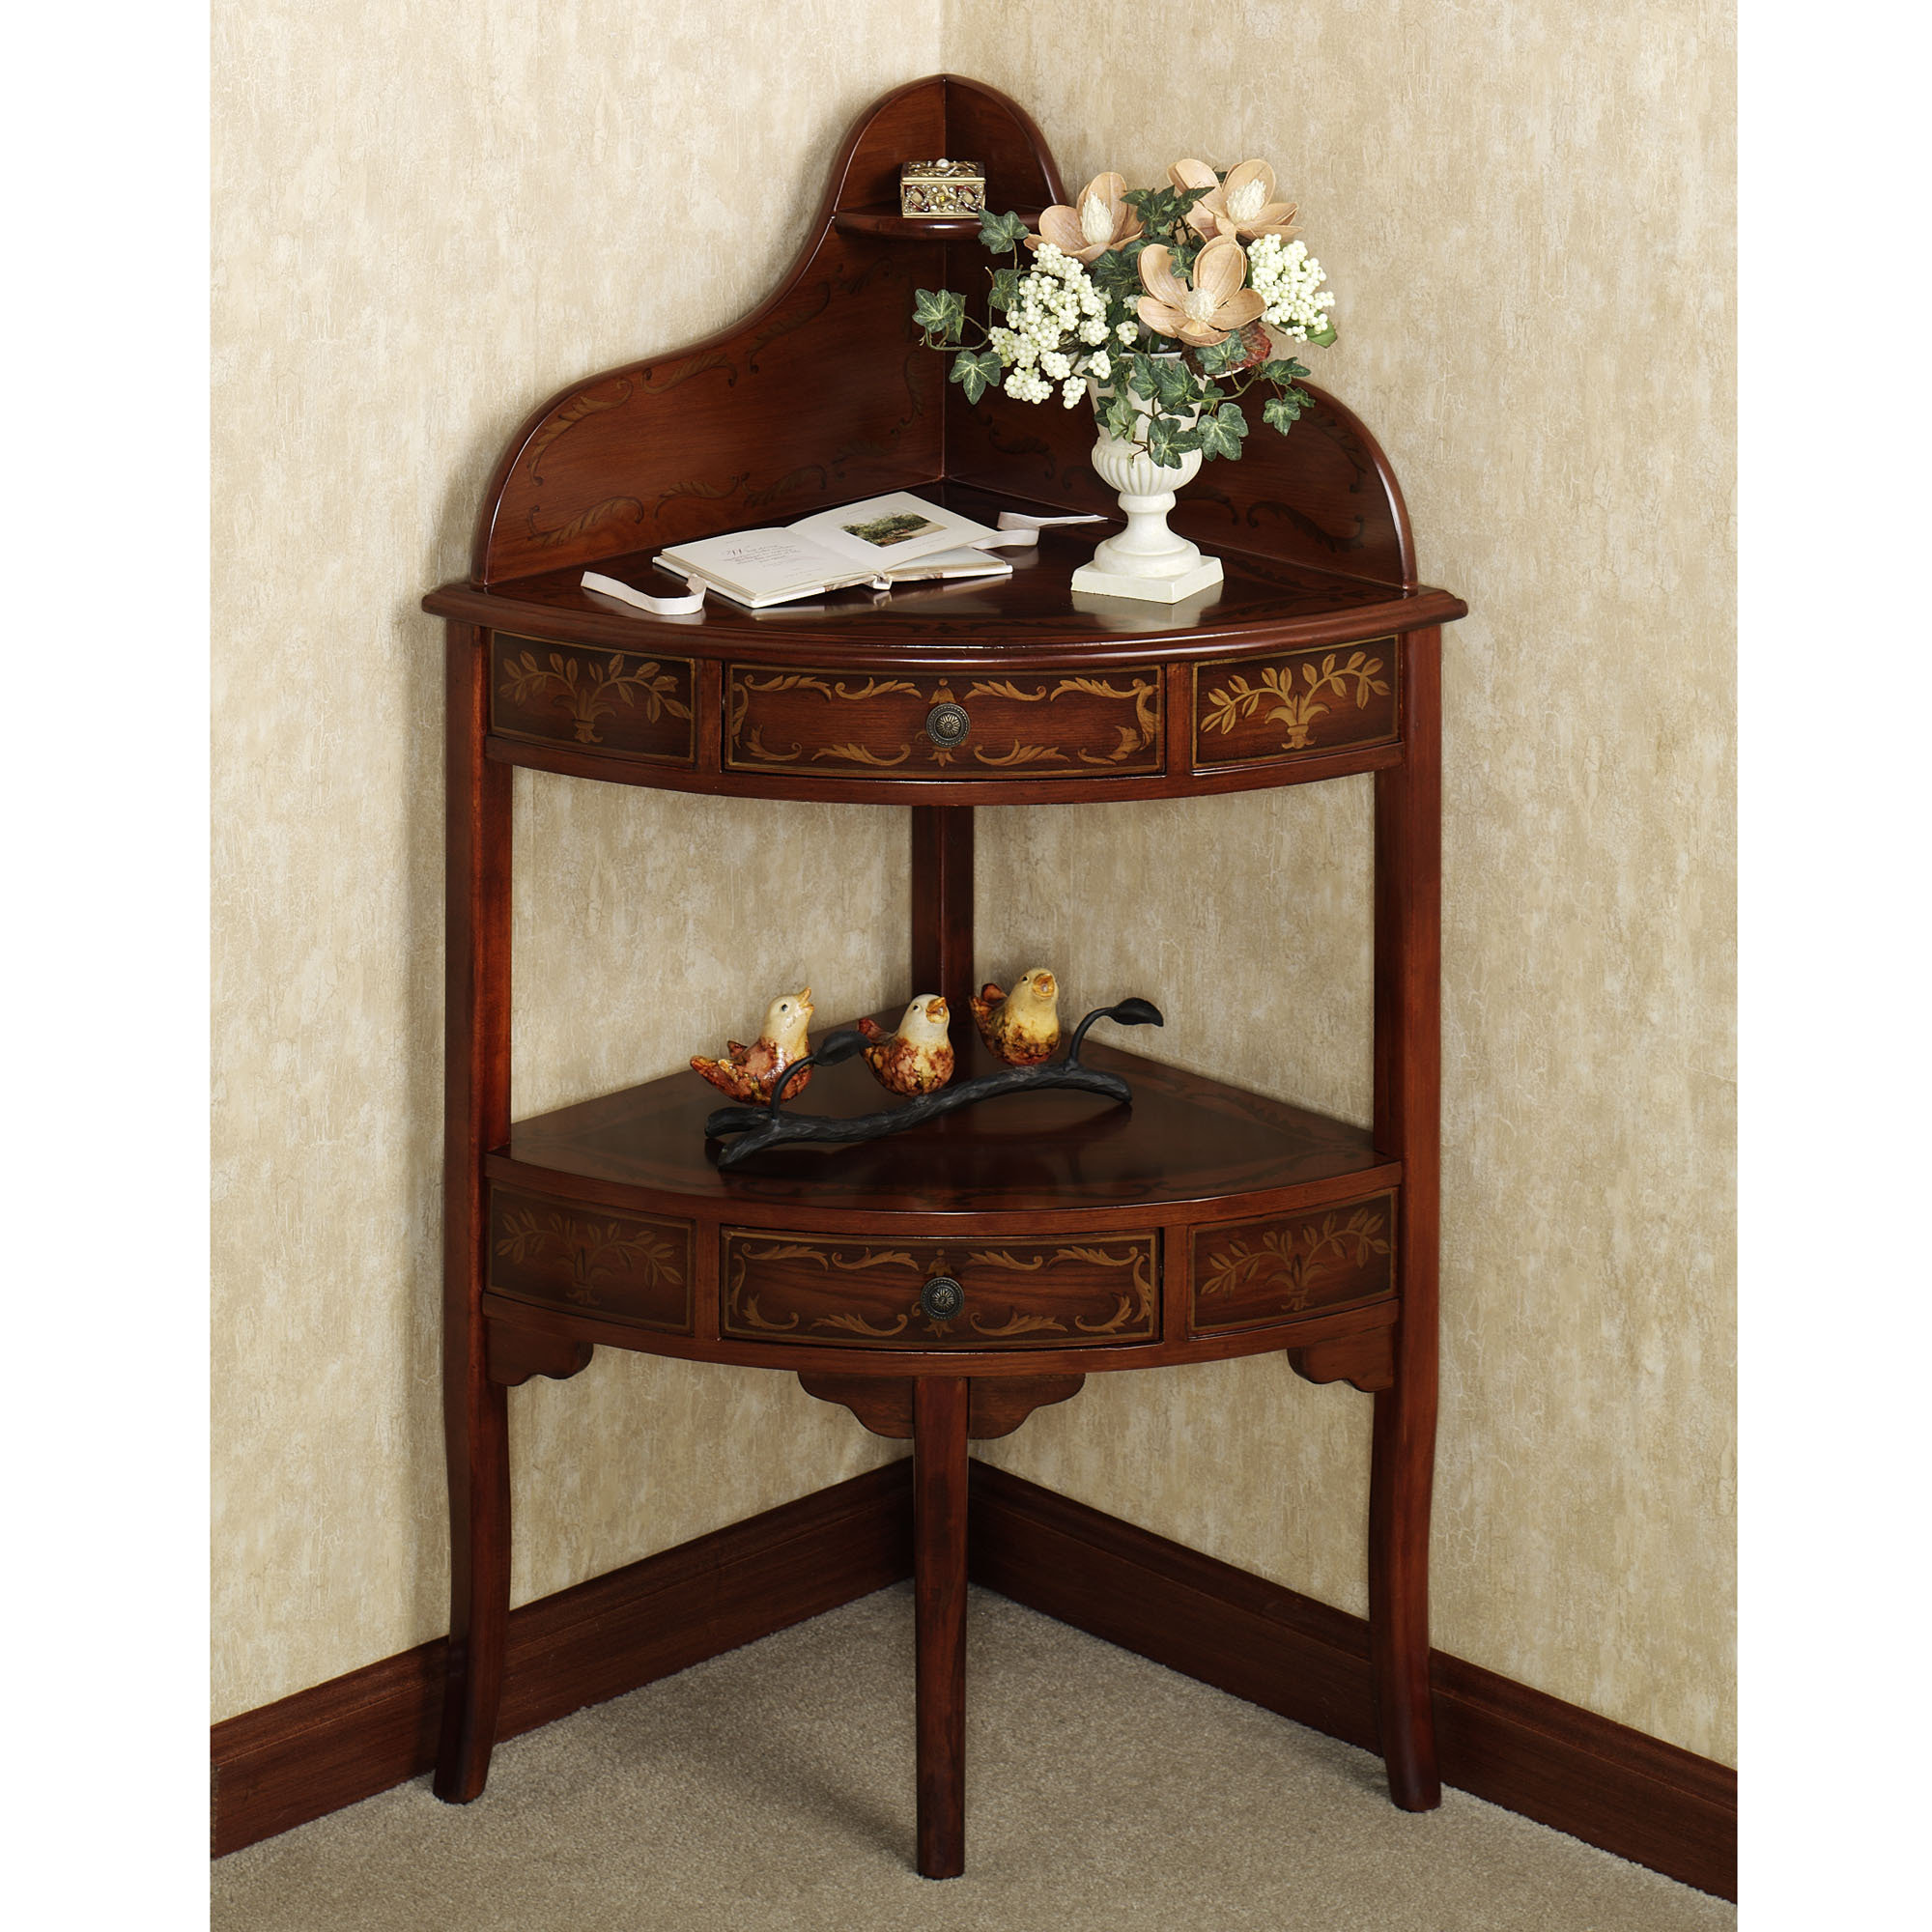 terrific triangle corner table with amazing design ajara decor interior brown wooden curving fornt and drawers depend two shelves three legs placed the gray floor accent runner